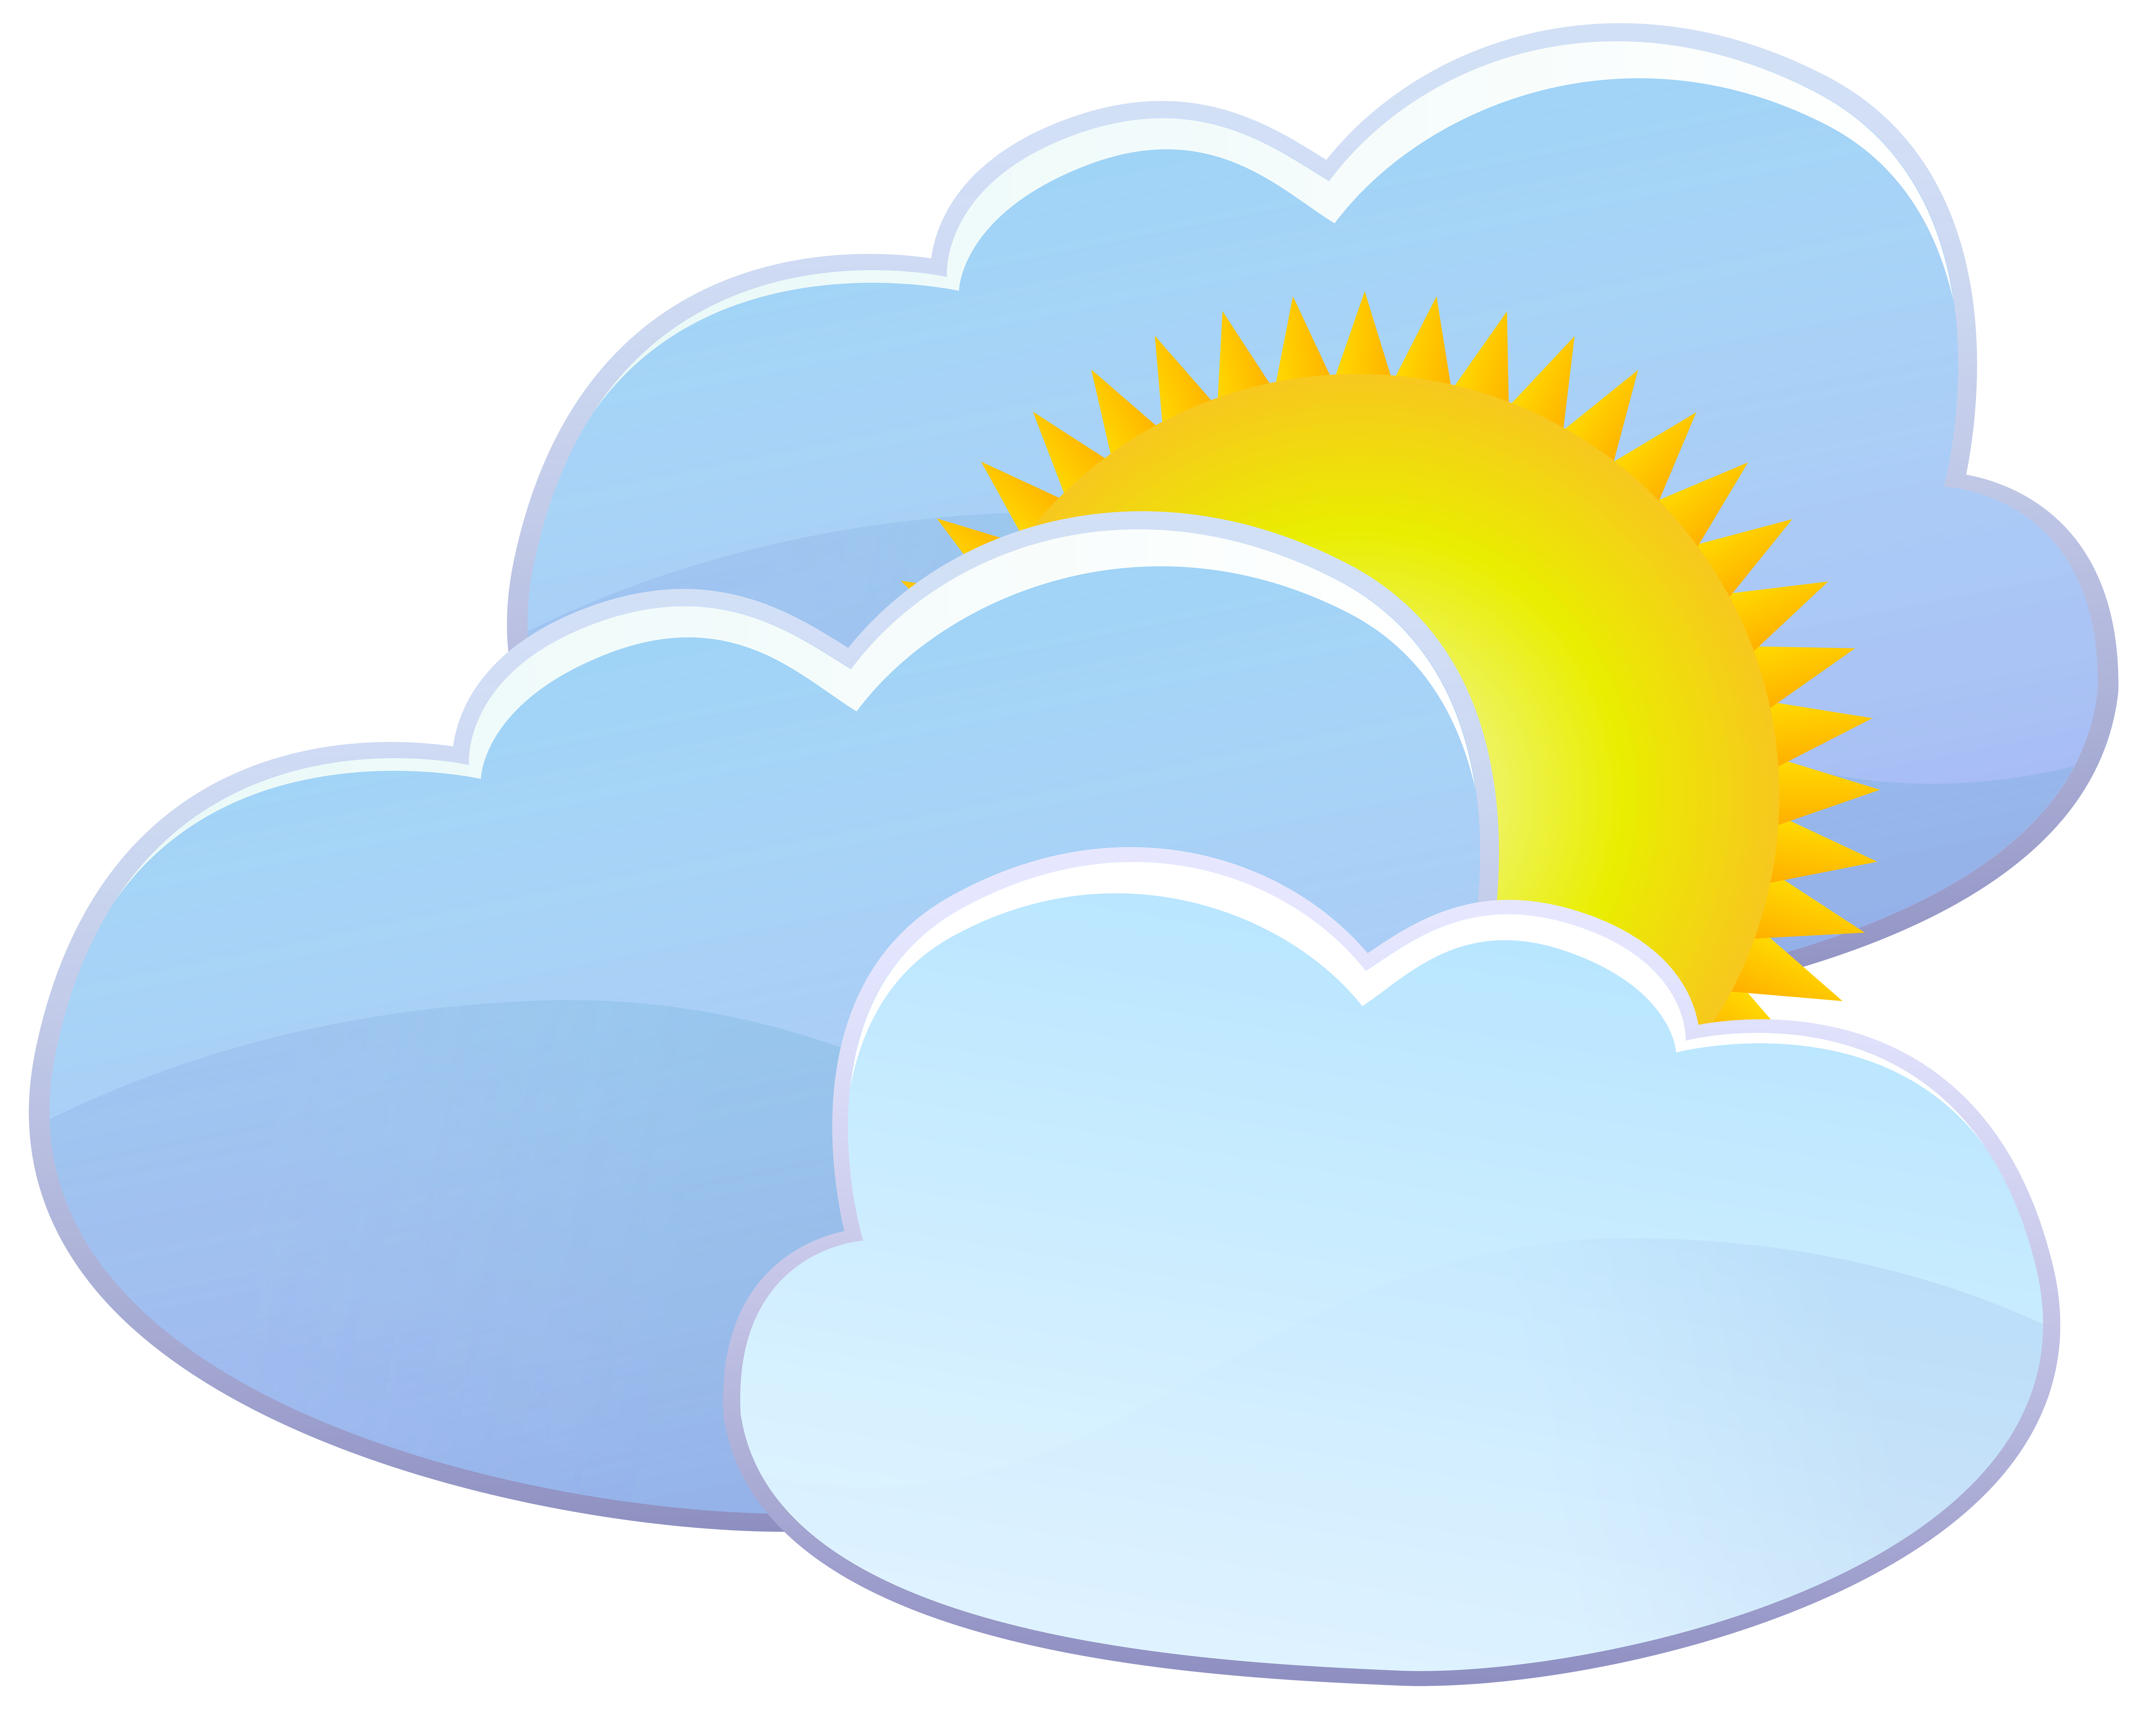 Three and sun icon. Clouds clipart weather